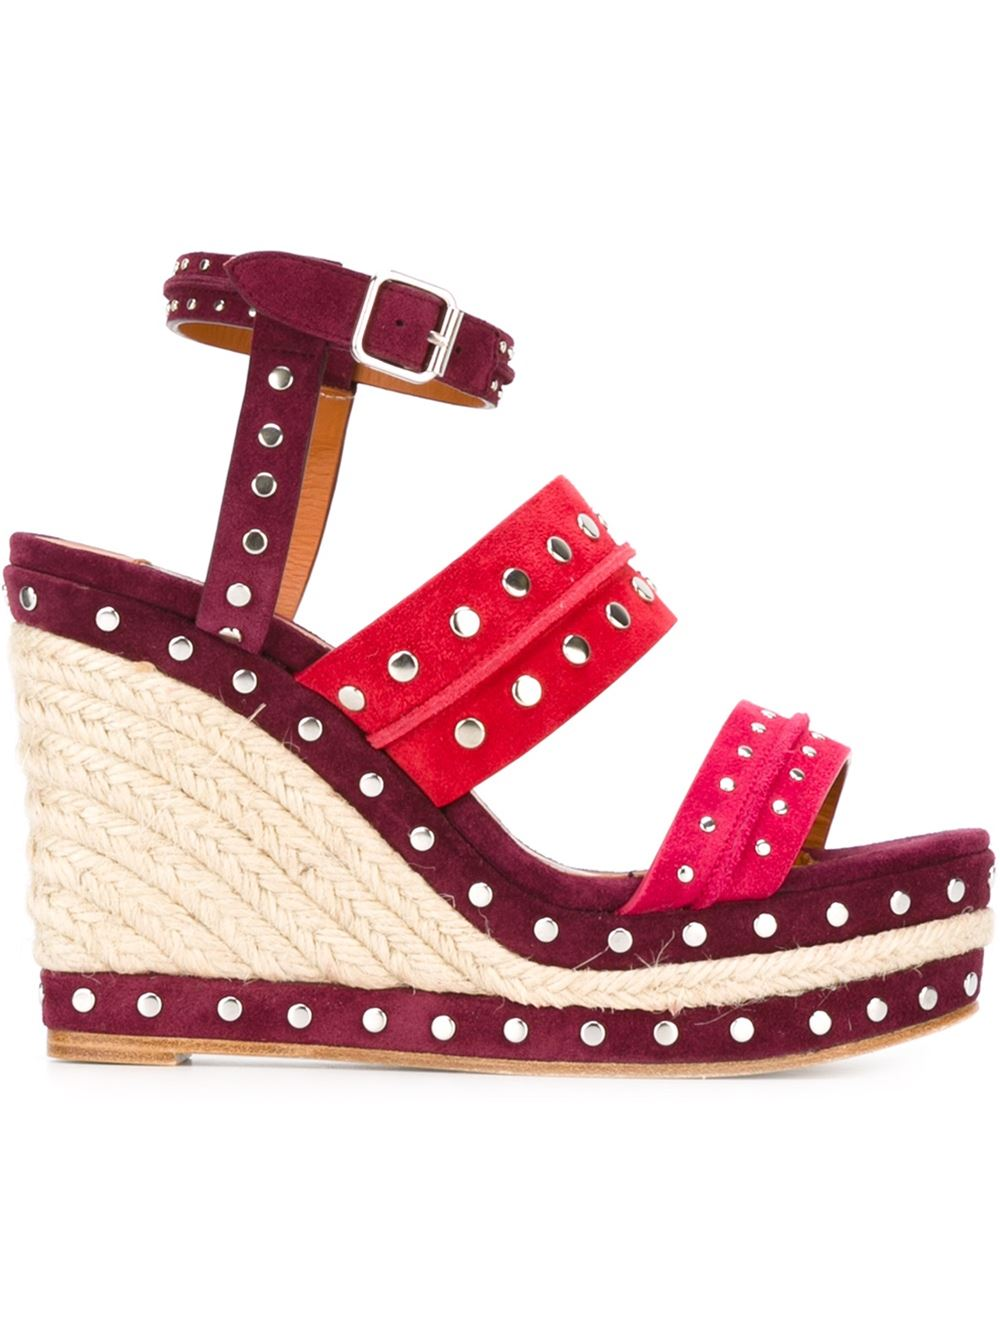 LANVIN Studded wedge sandals, FarFetch.com